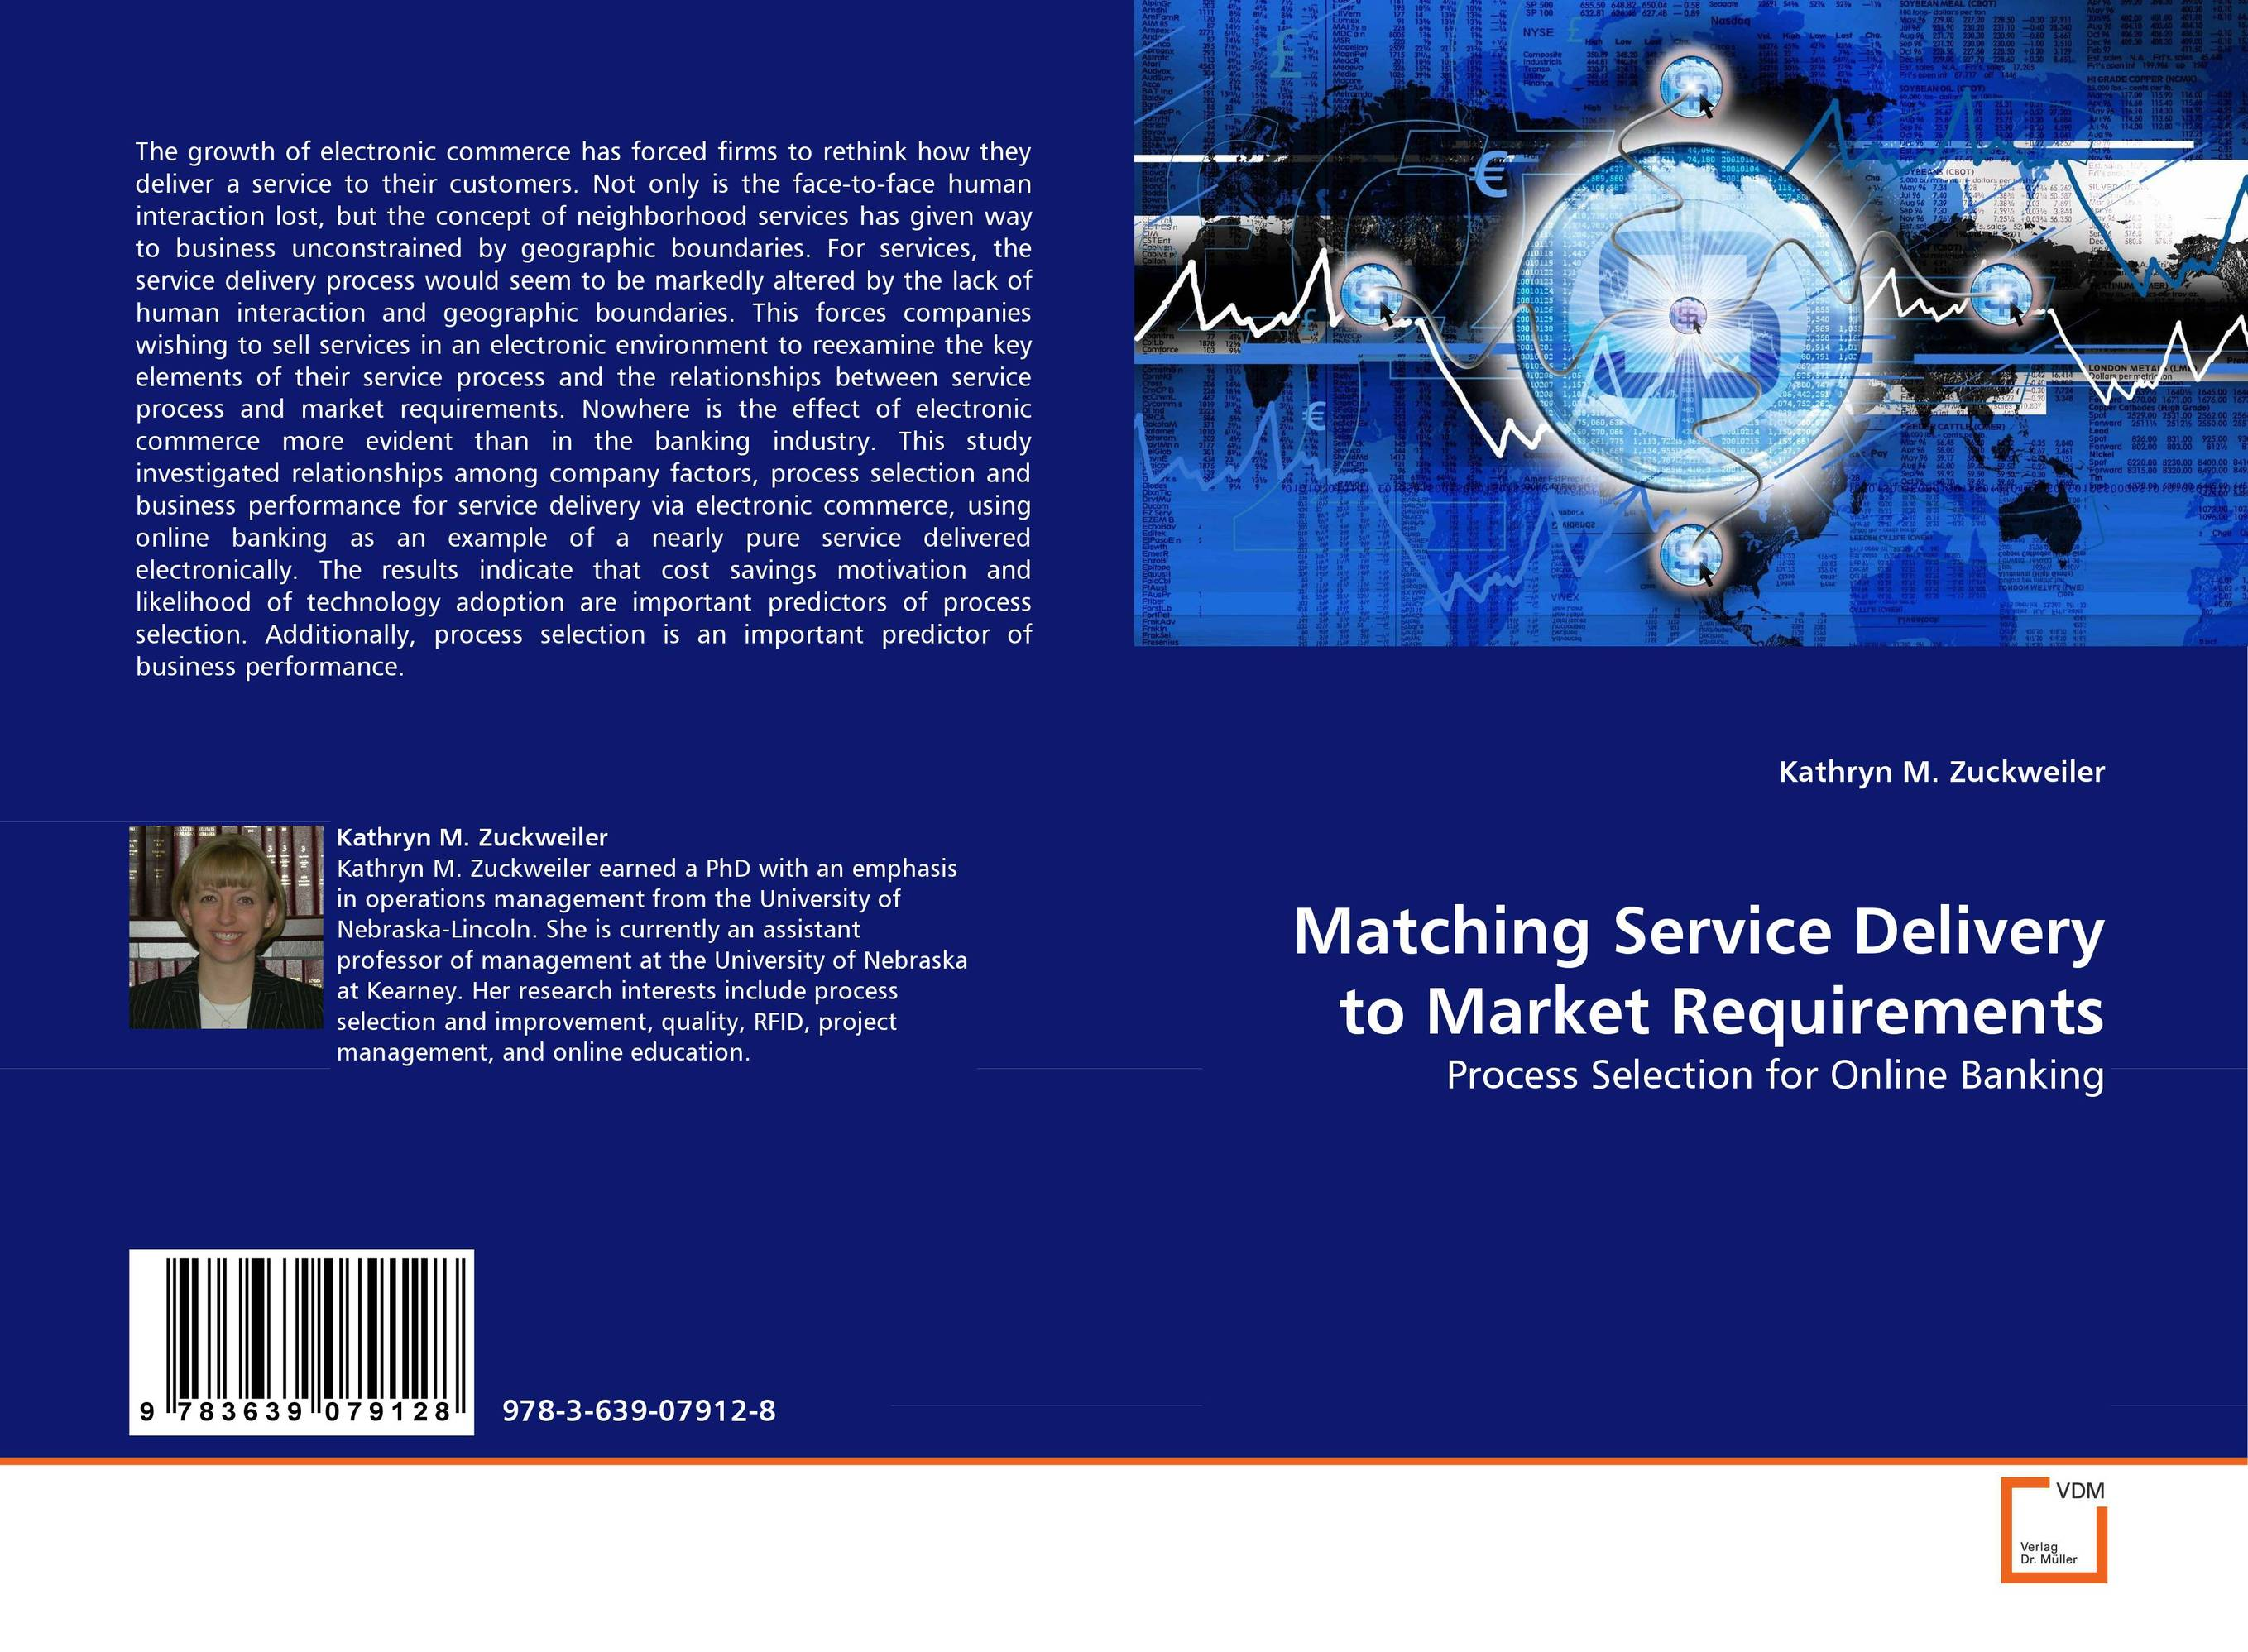 Matching Service Delivery to Market Requirements